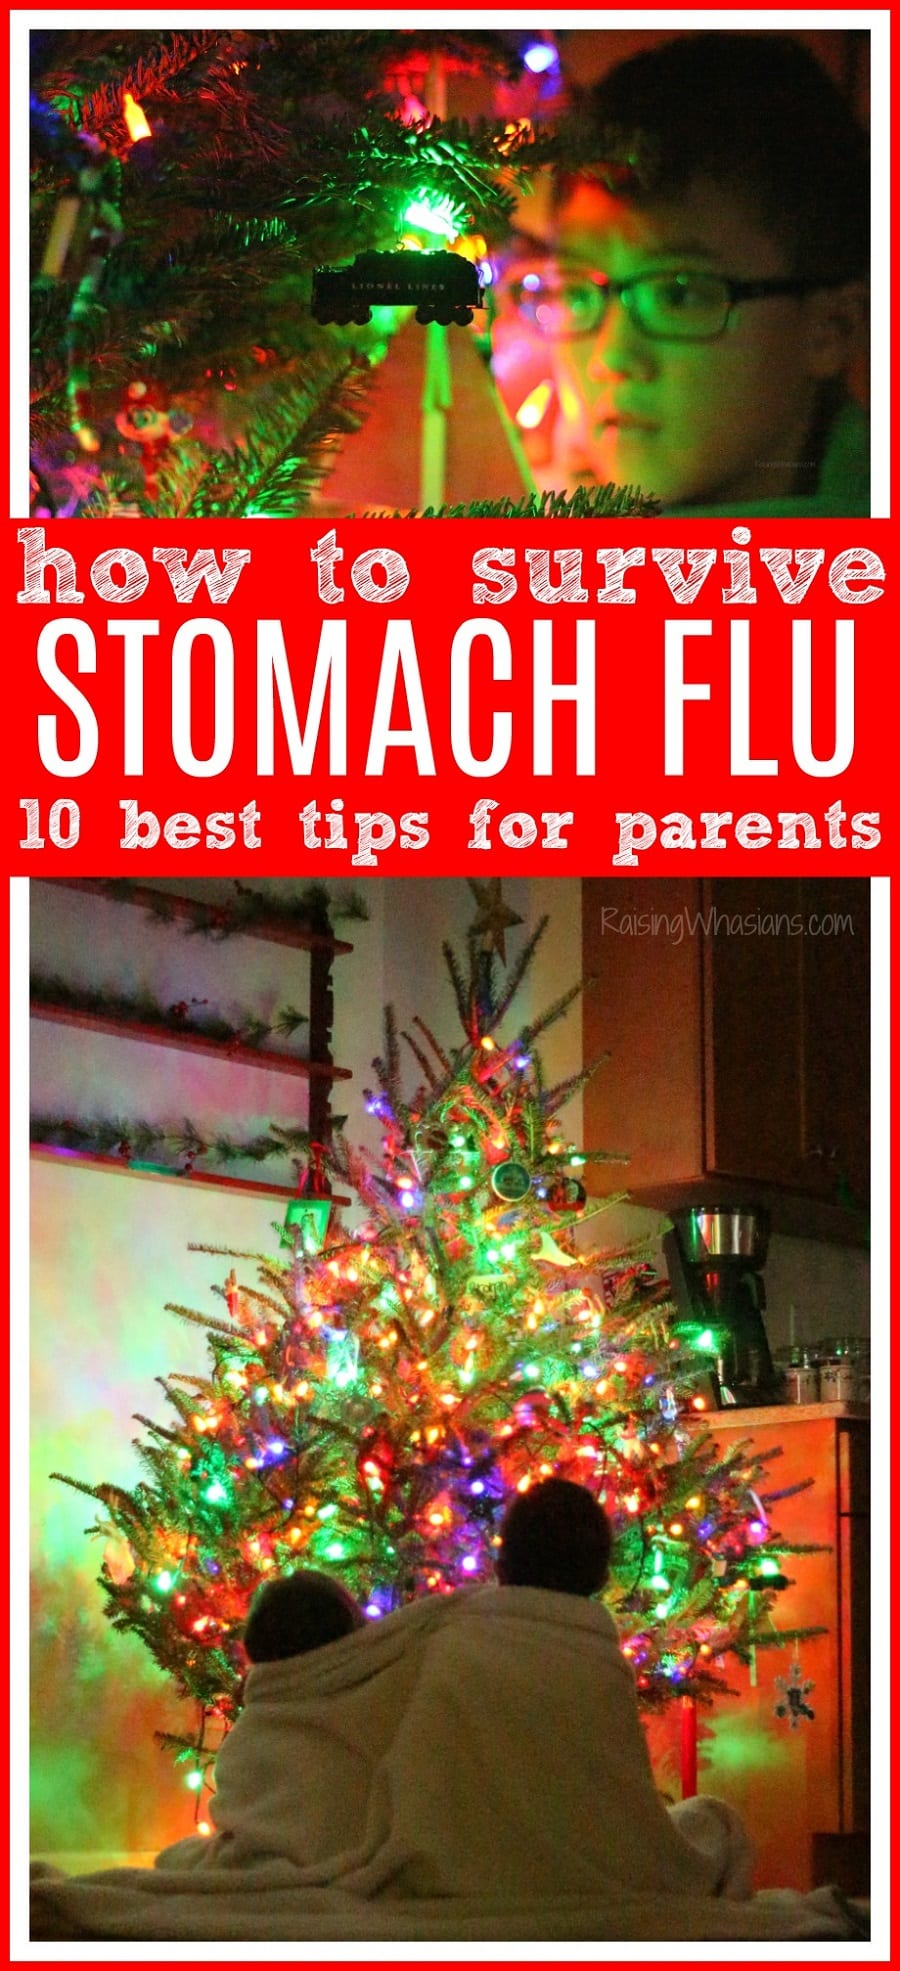 How to survive stomach flu